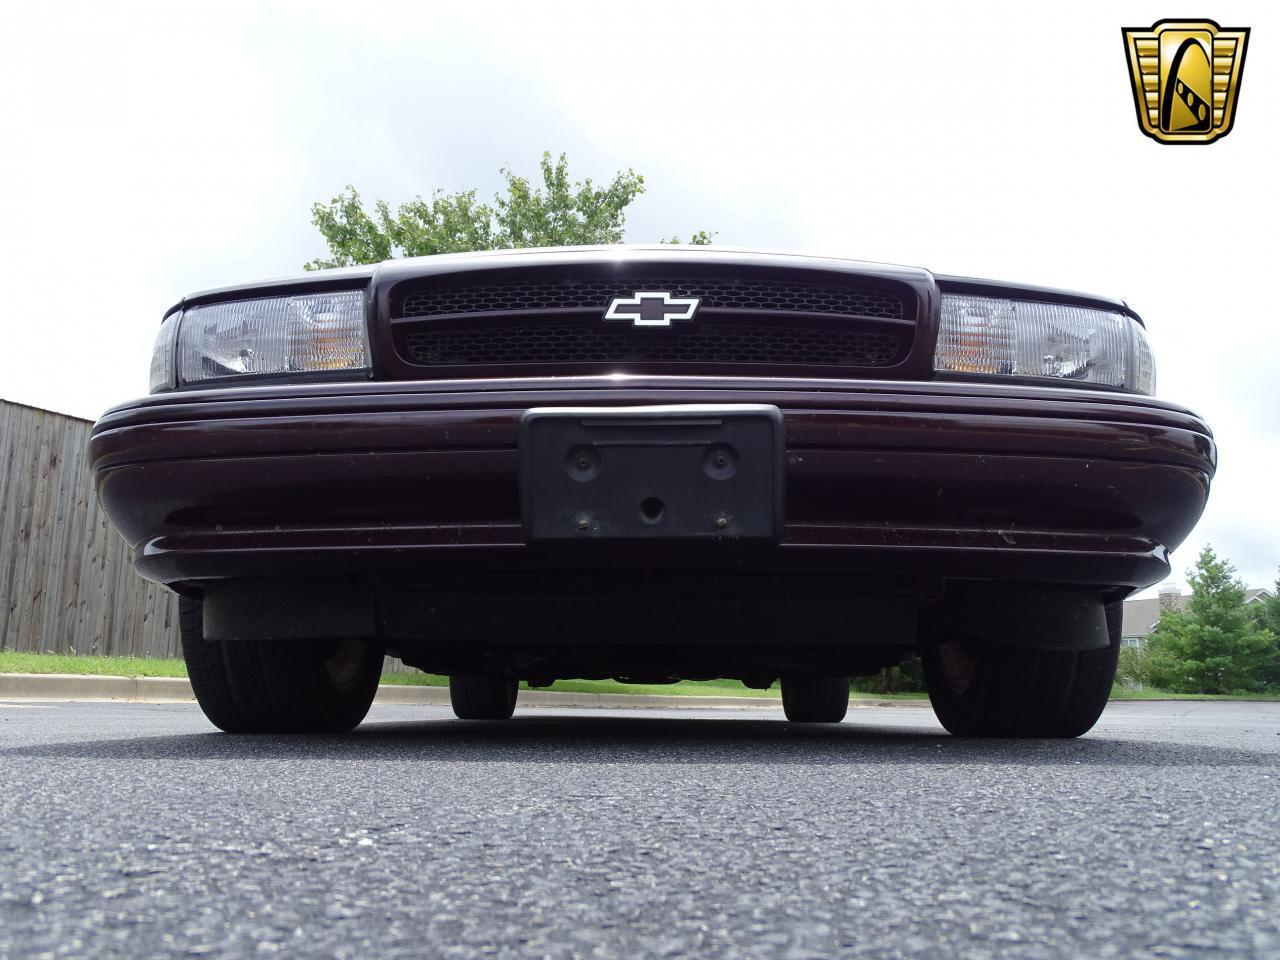 Large Picture of 1996 Chevrolet Impala - $19,000.00 Offered by Gateway Classic Cars - St. Louis - QB5K